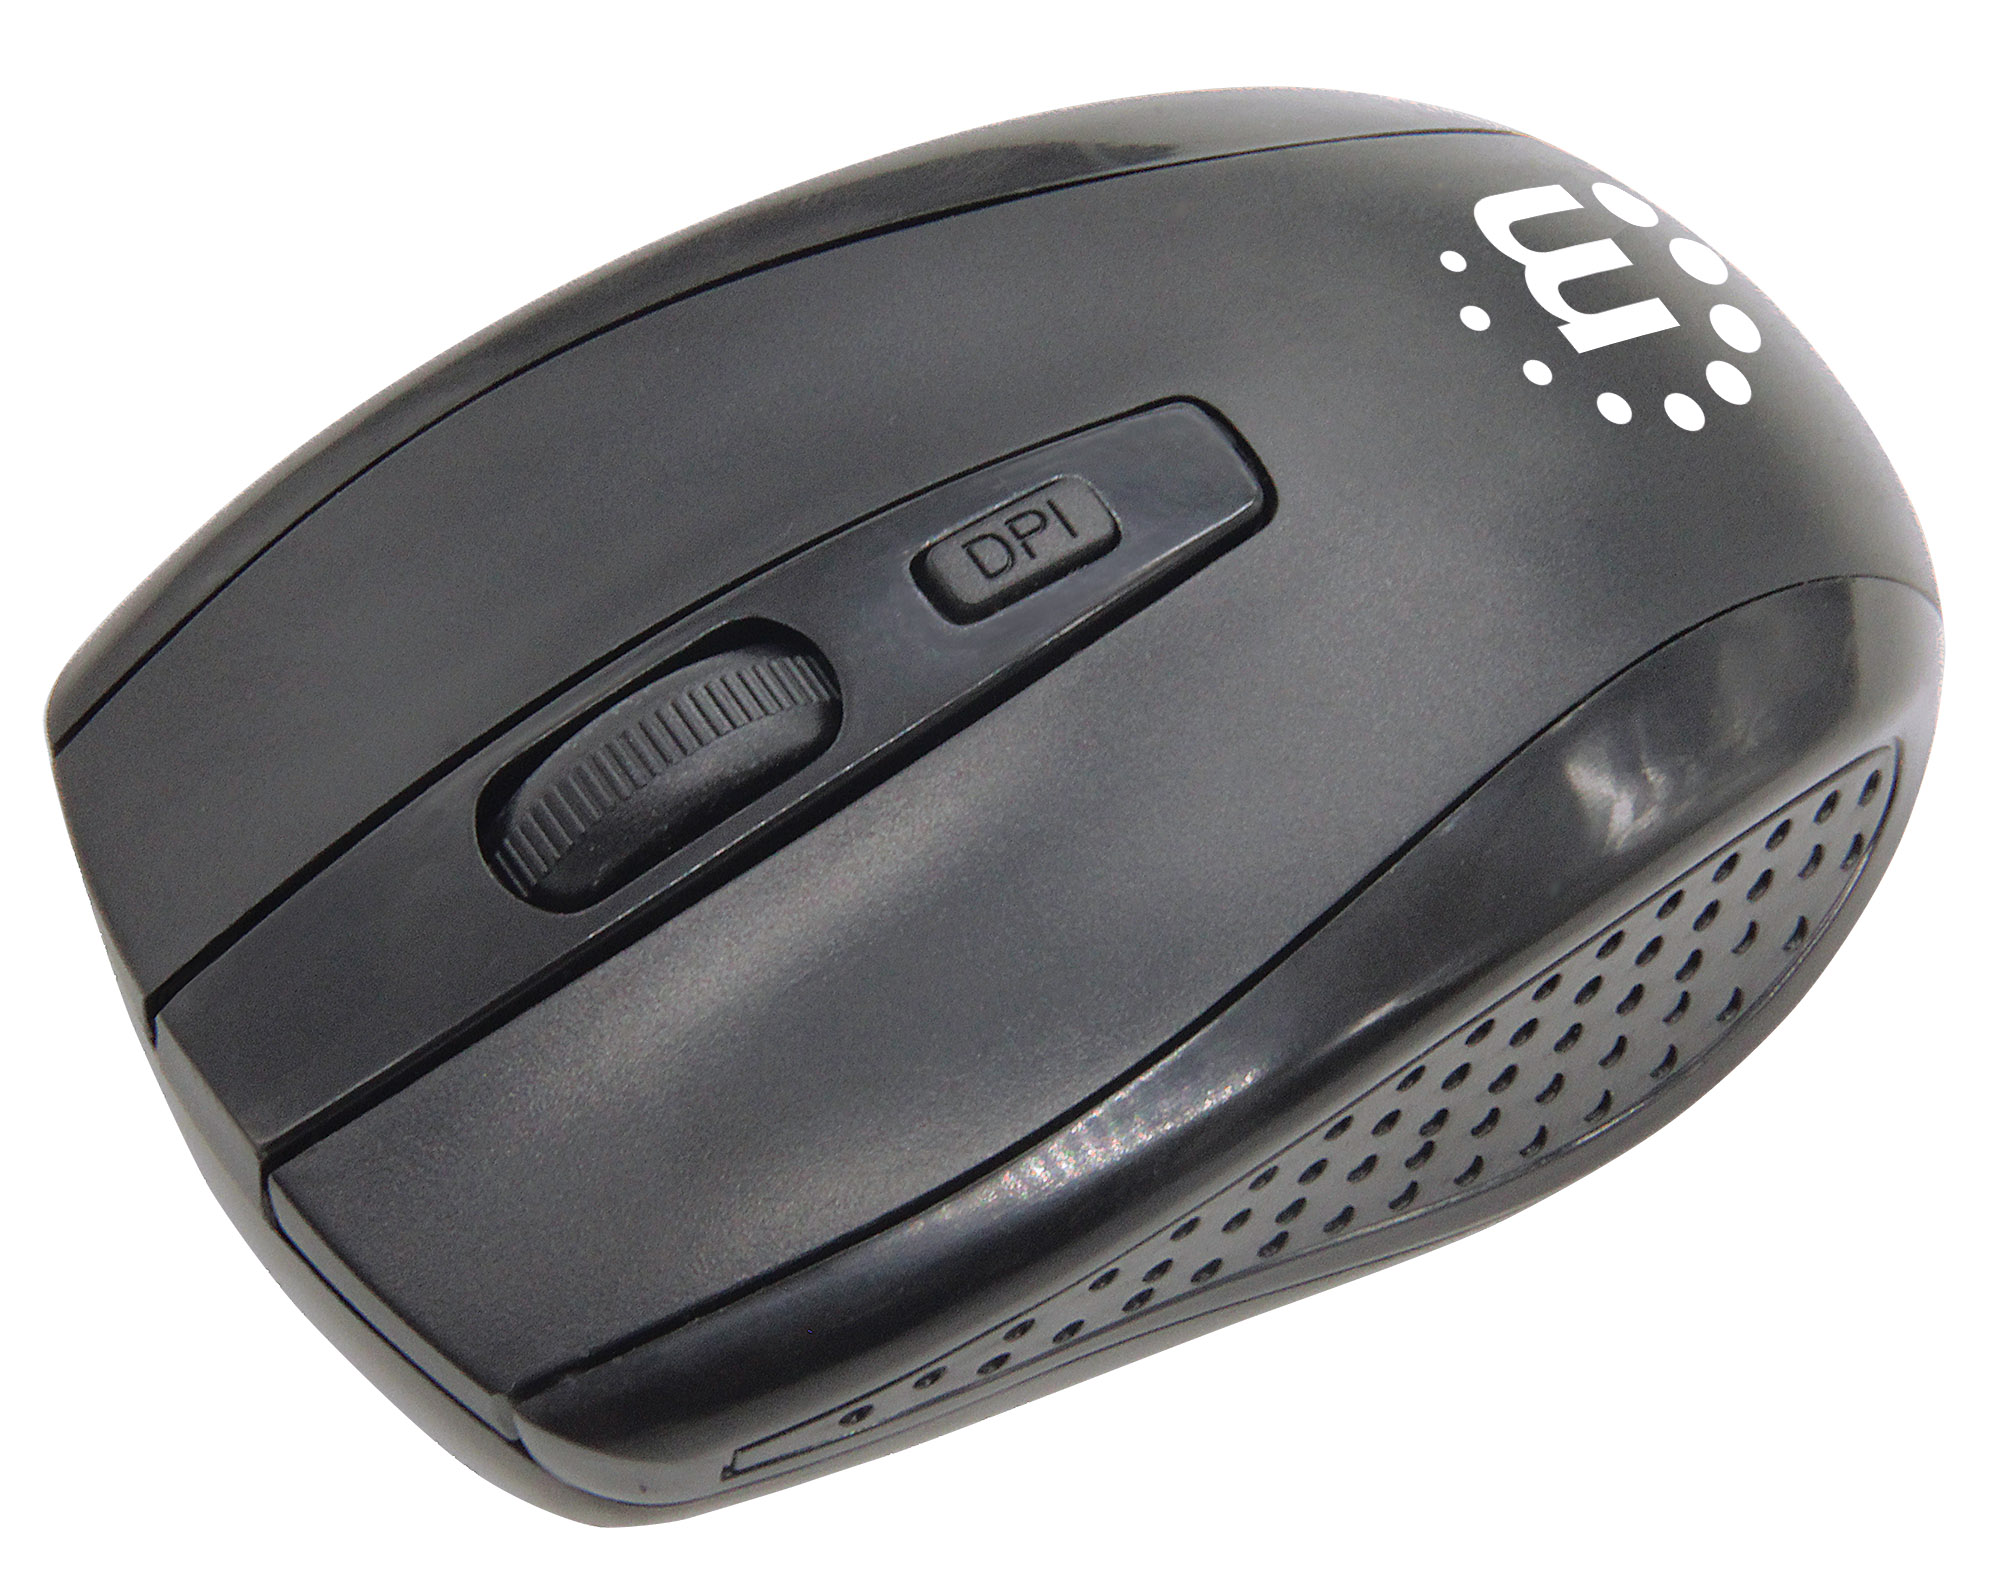 Wireless Keyboard and Optical Mouse Set